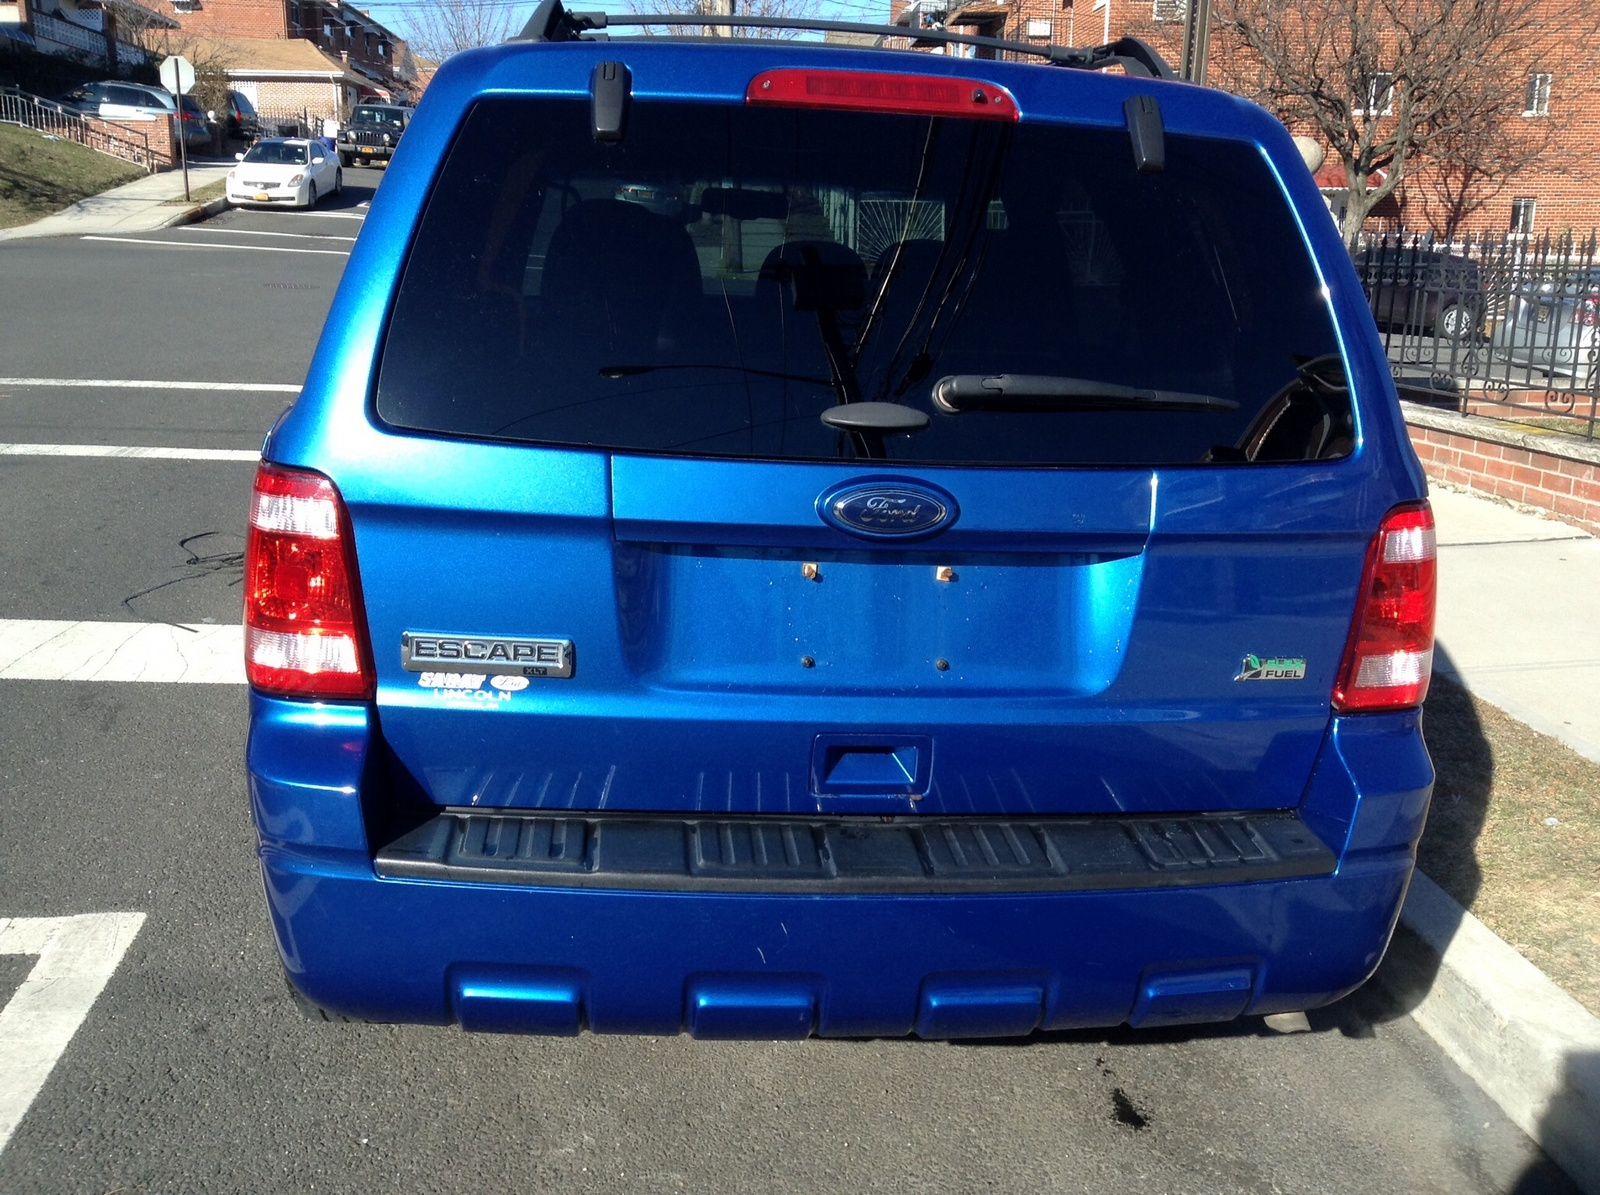 Ford Escape V6 Towing Capacity Html Autos Post